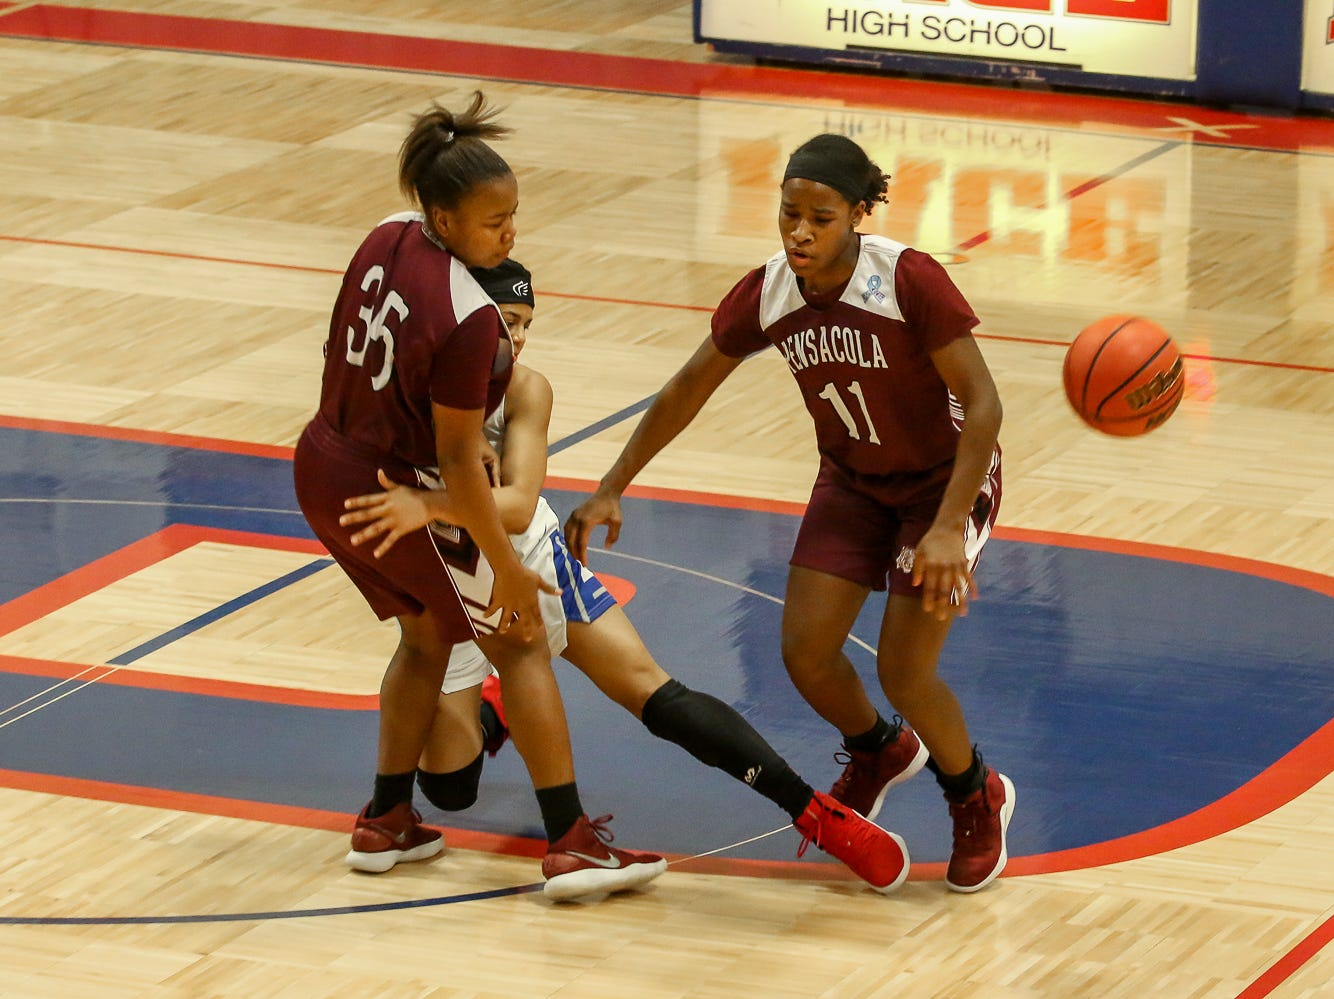 Pace's Cyla Byrd (15) collides with Joniya Perry (35) after getting tripped up by PHS' Nala Baker (11) at Pace High School on Friday, January 4, 2019.